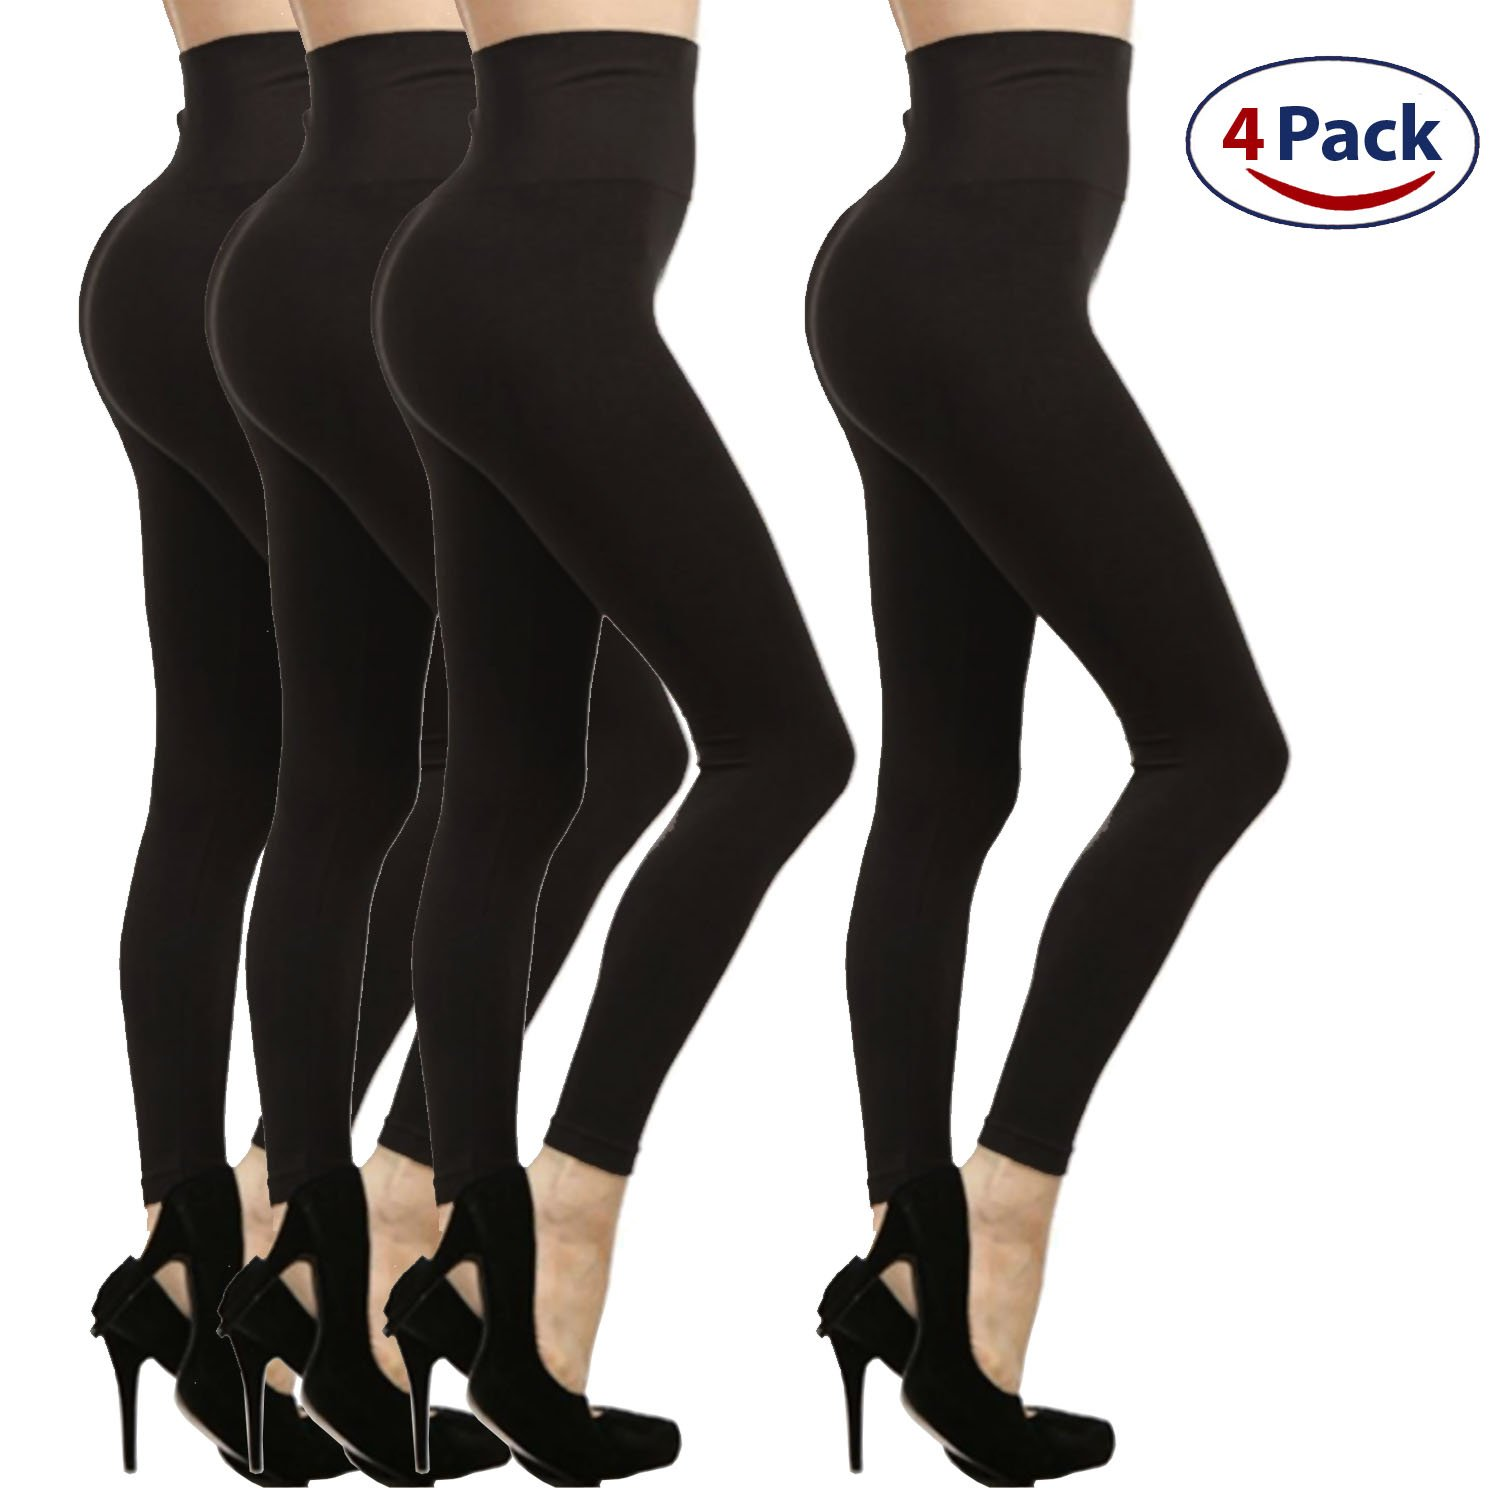 4-Pack High Waist Warm Fleece Lined Tummy Control Full Length Legging Winter Pants